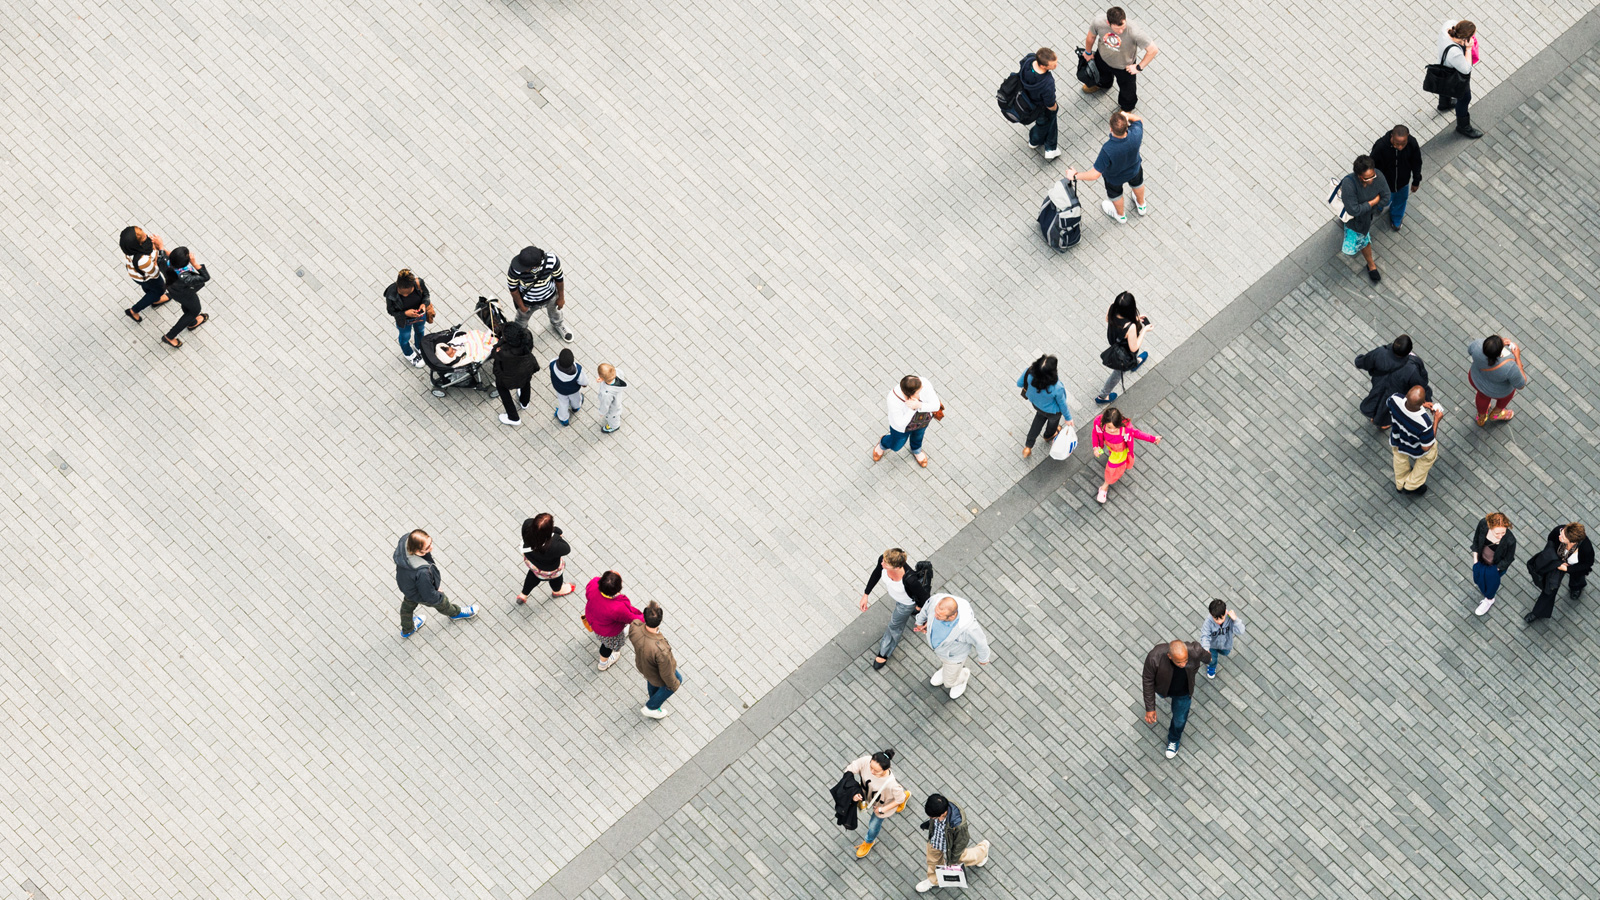 Photograph of a crowd from above